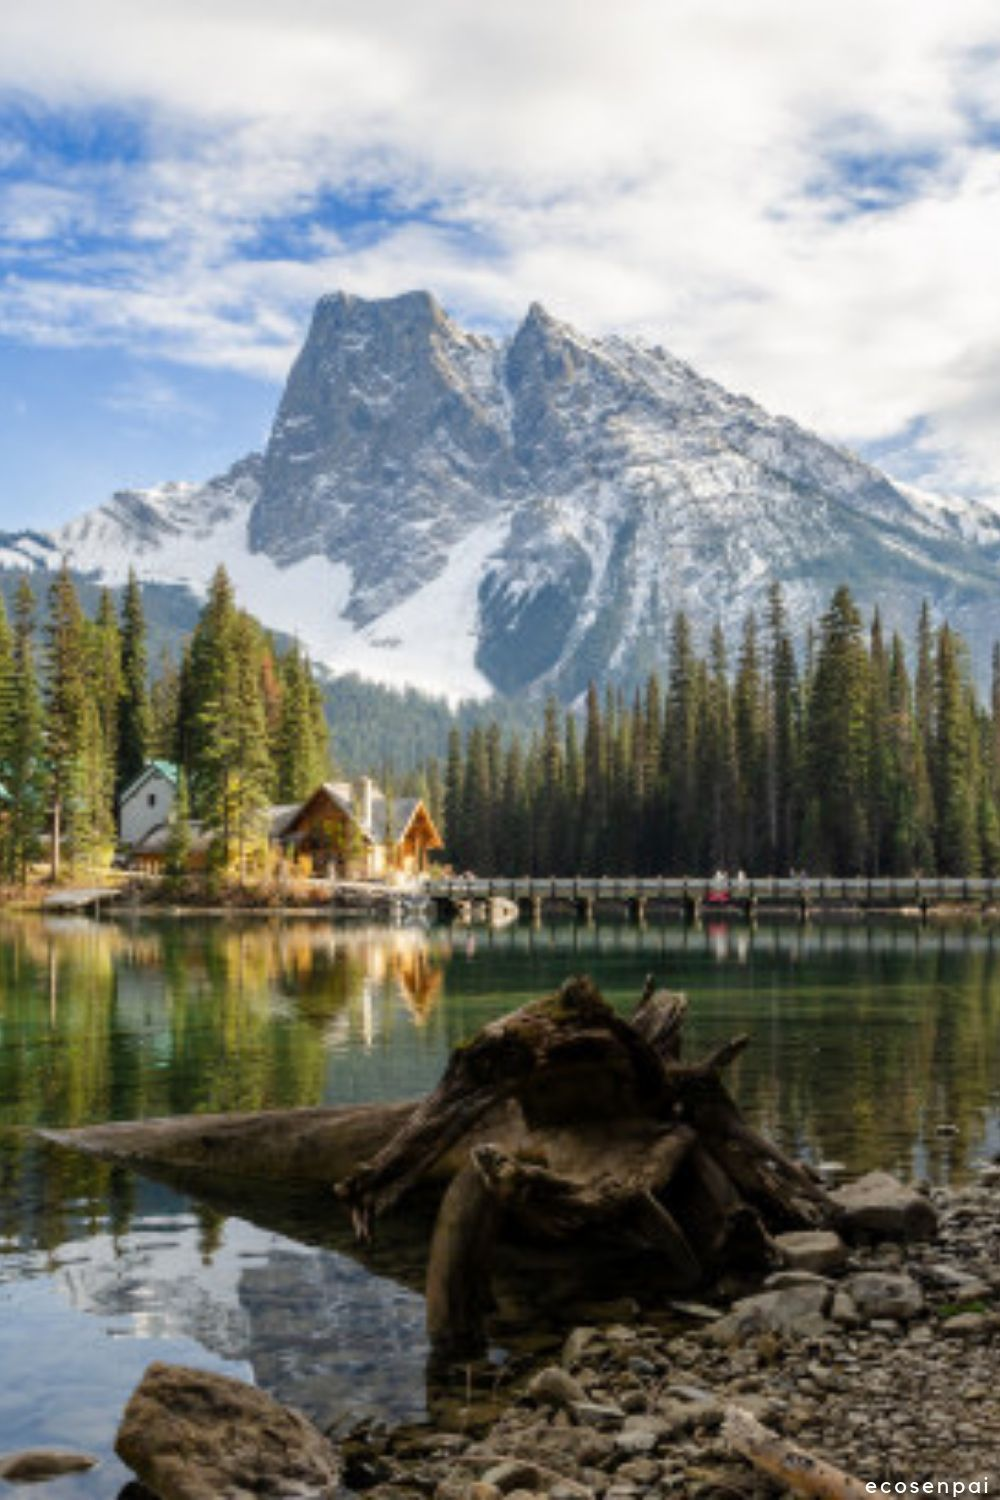 Lake And Beautiful Mountain In The Background Beautiful Nature Wallpaper Ideas For Yo Amazing Nature Photography Nature Photography Beautiful Nature Wallpaper